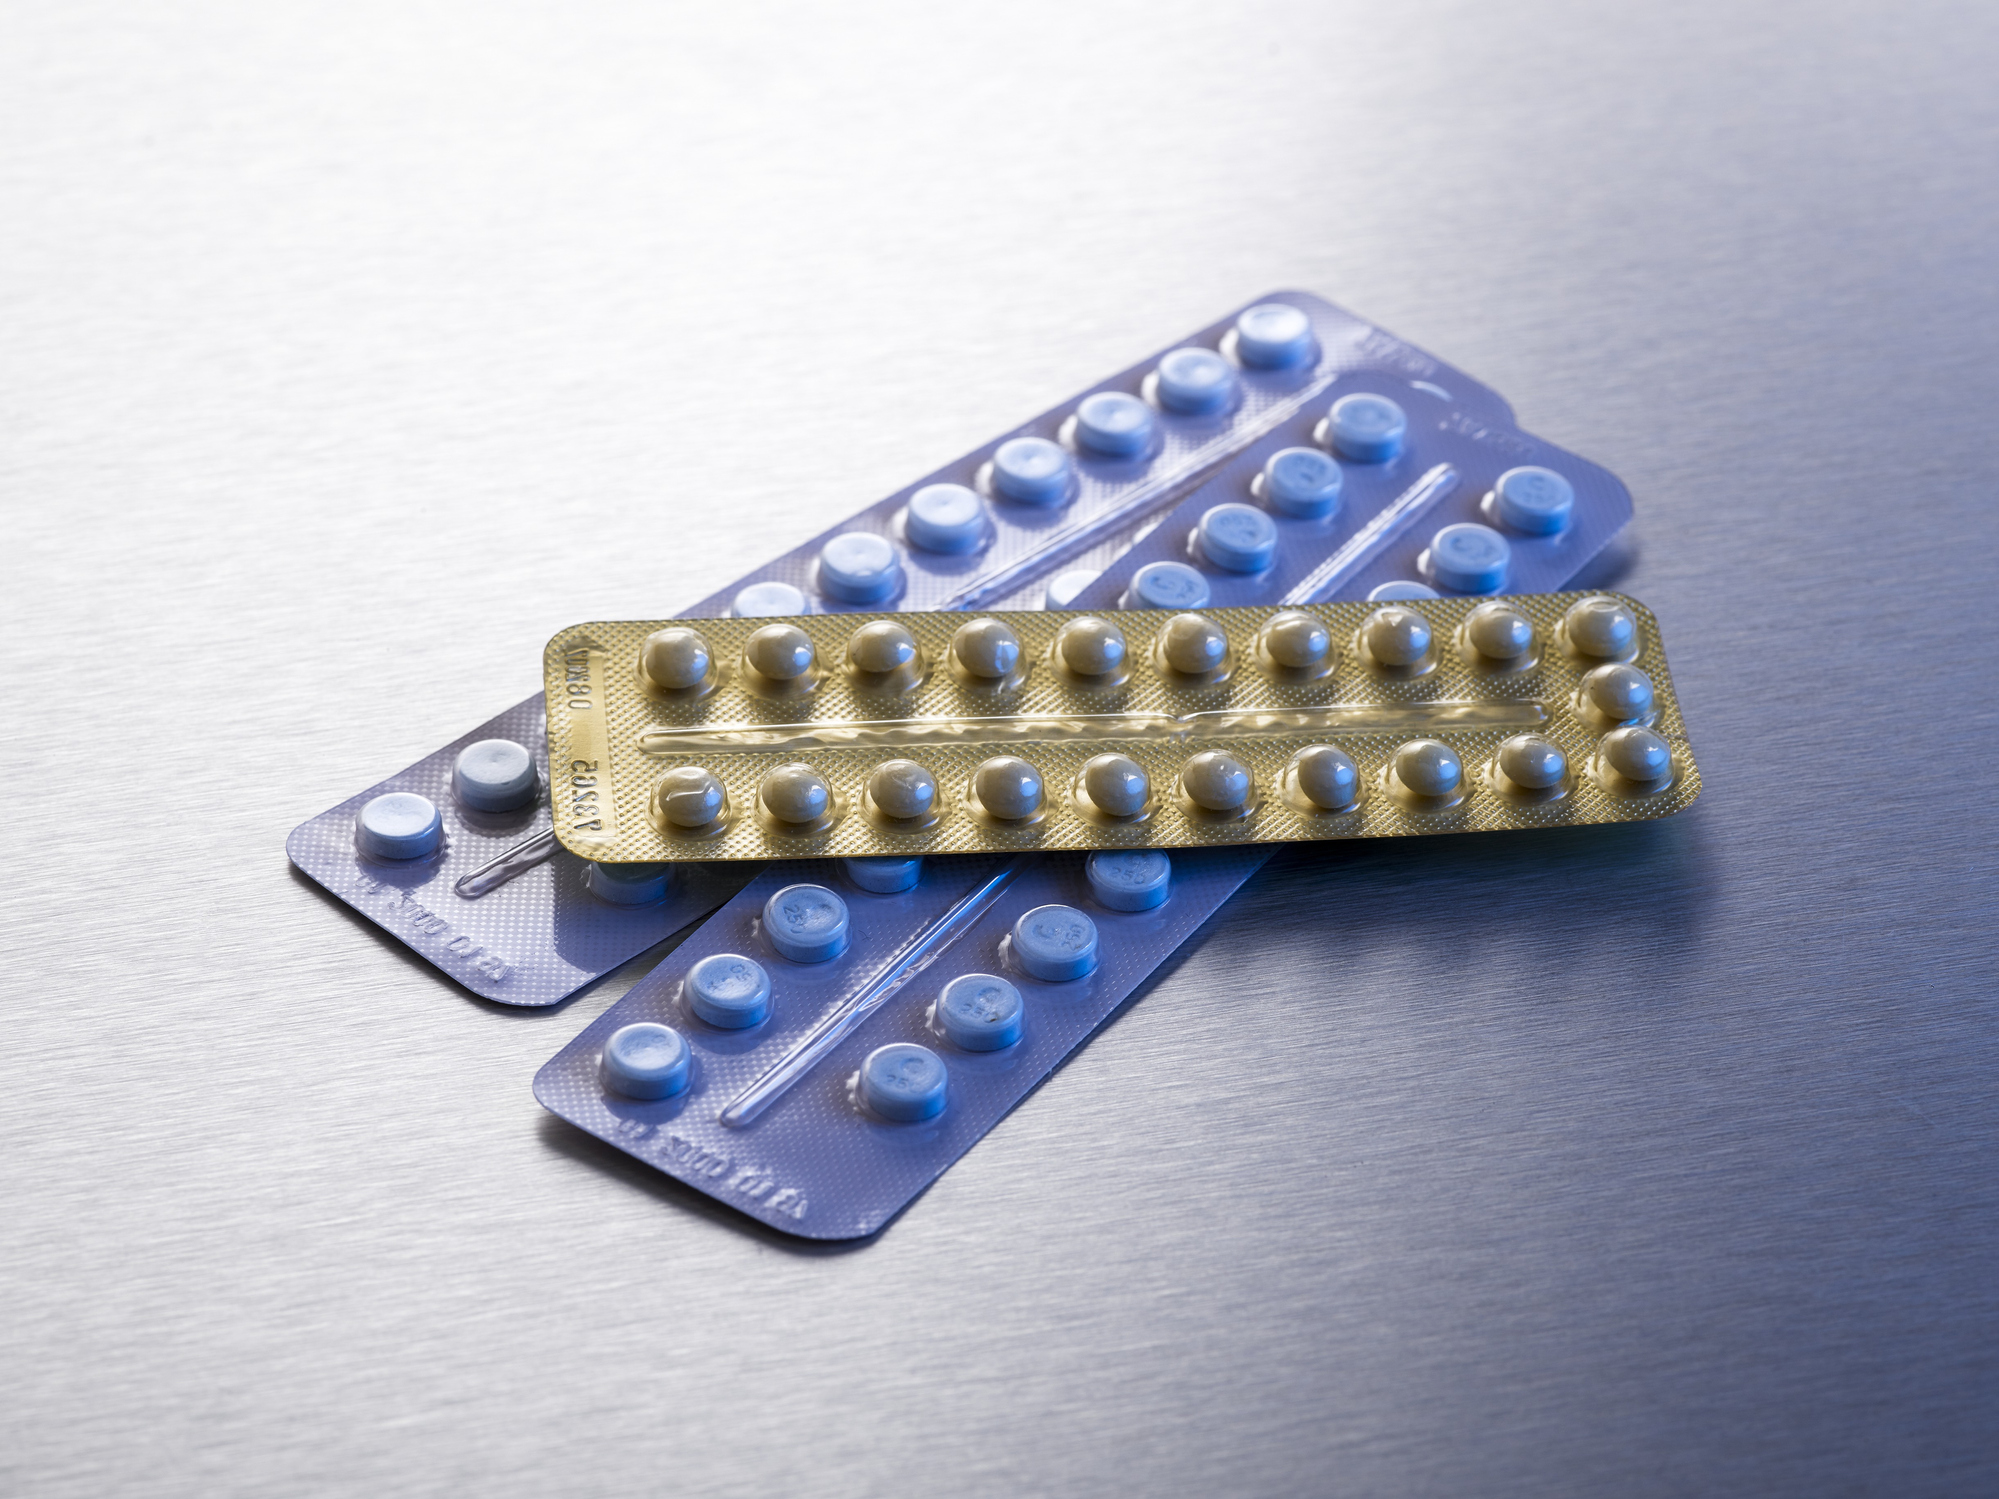 Contraceptive pills in blister packs